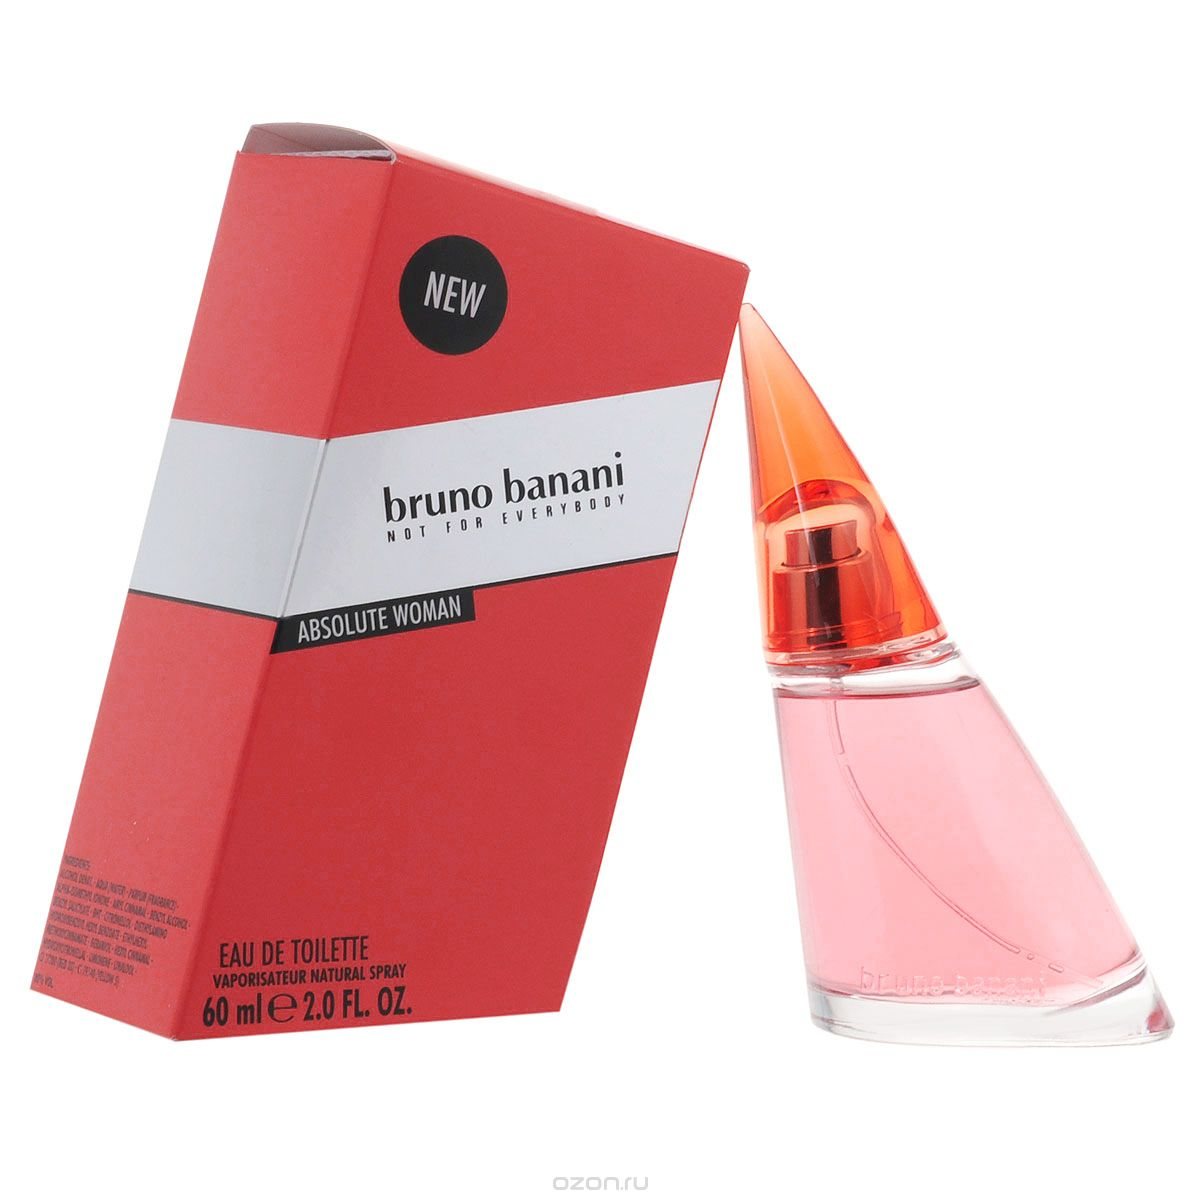 Bruno Banani Absolute Woman női parfüm (eau de toilette) Edt 20ml